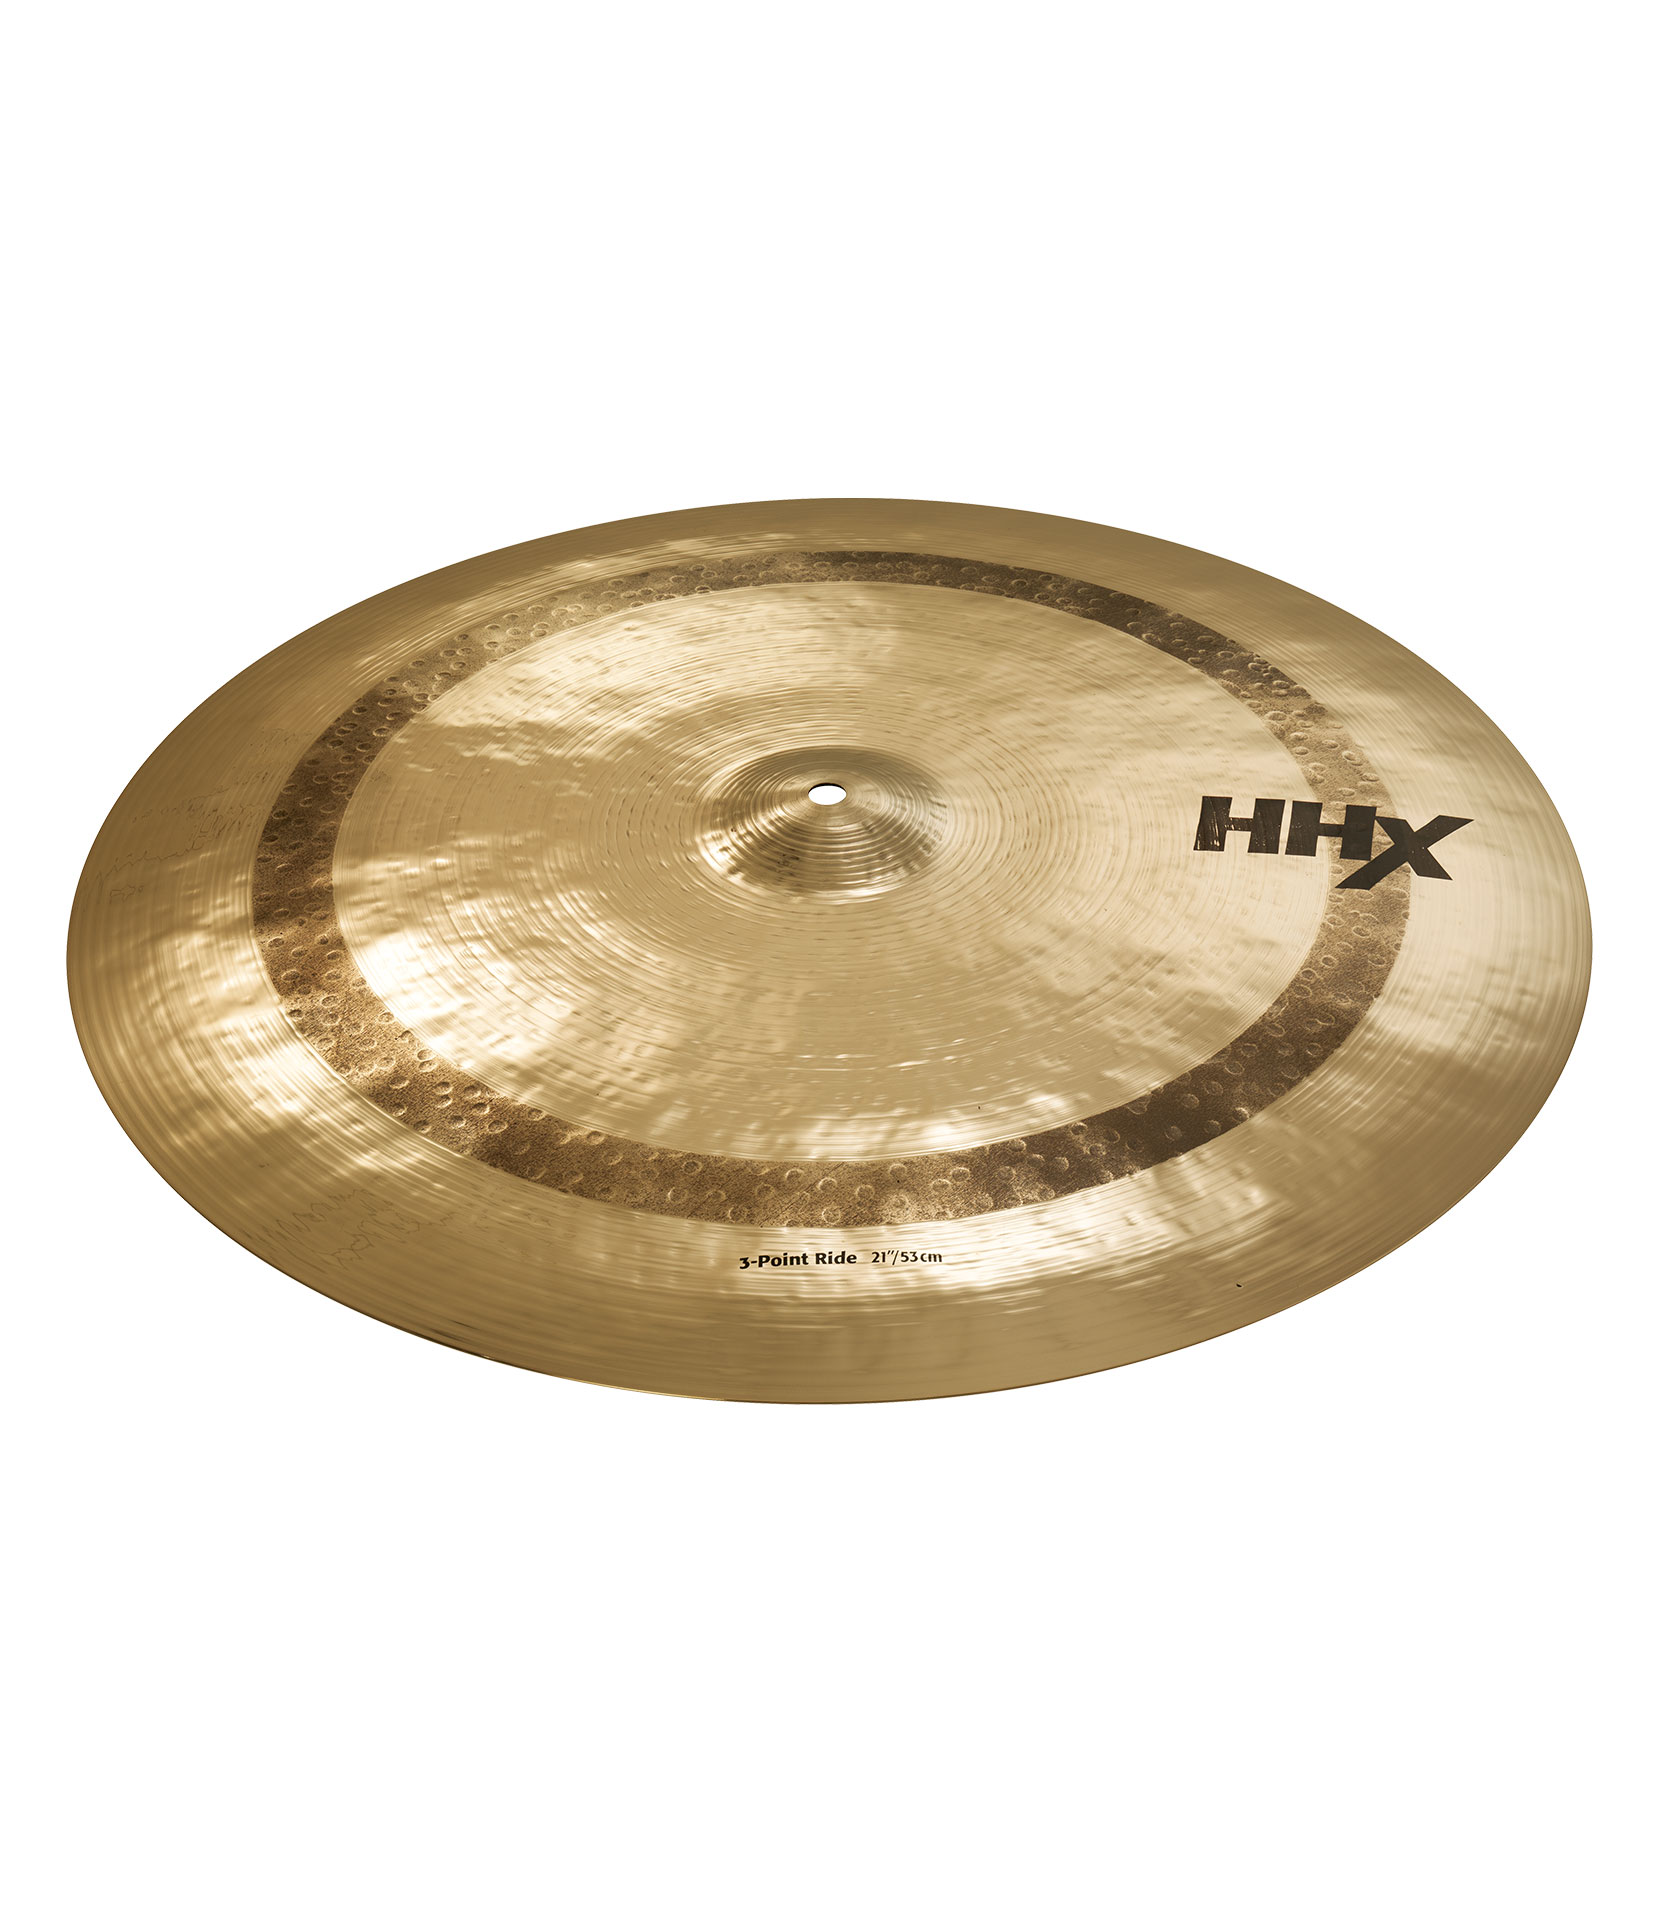 Buy sabian - 21 HHX 3 Point Ride